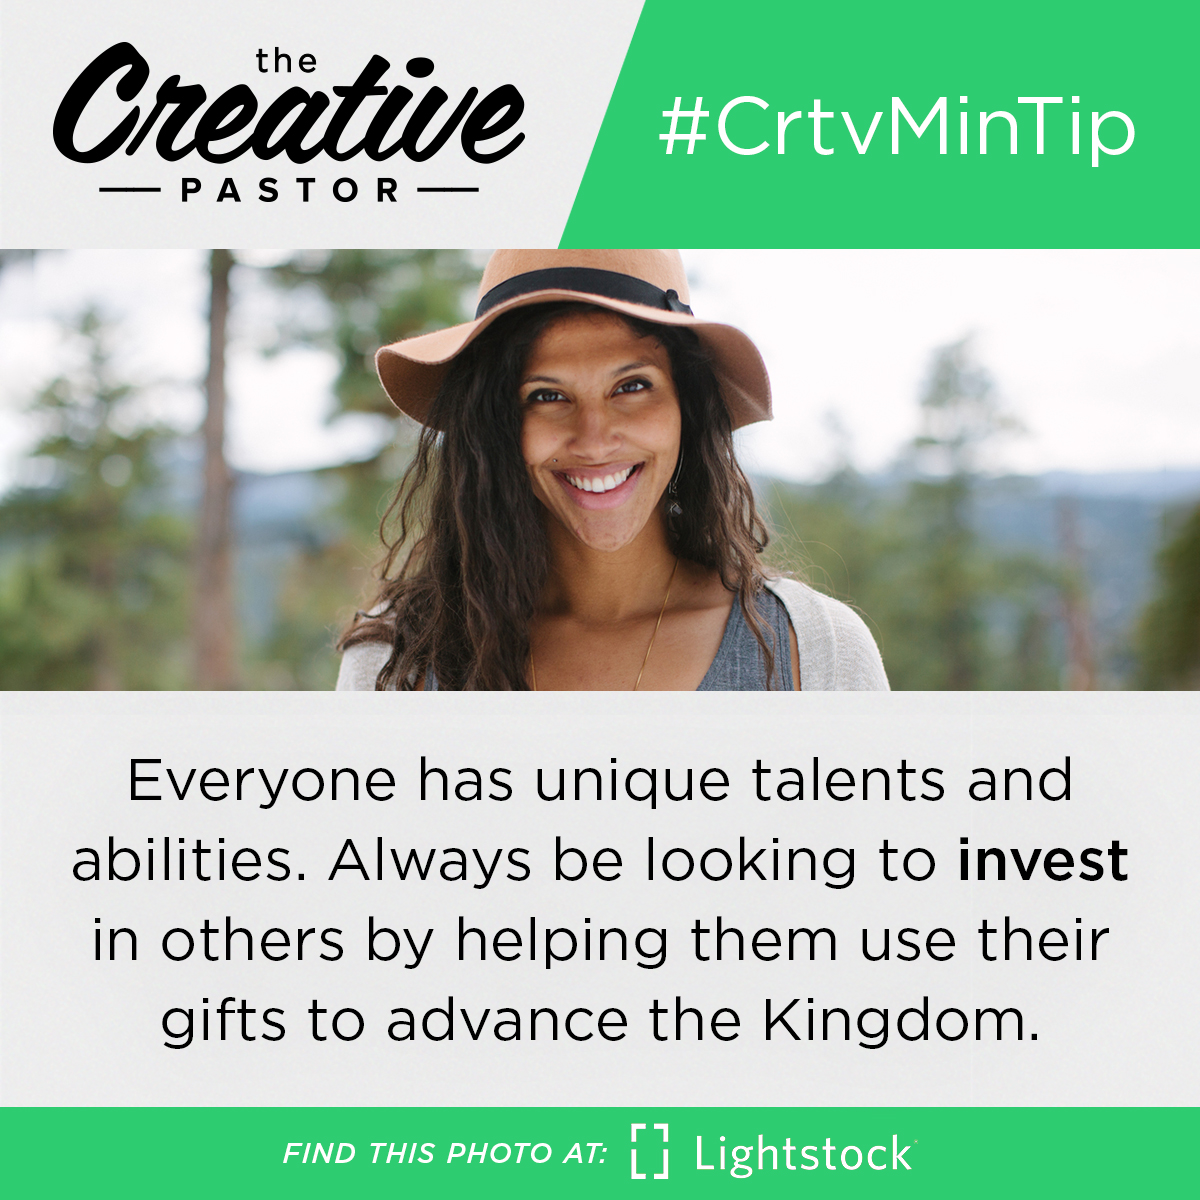 Everyone has unique talents and abilities. Always be looking to invest in others by helping them use their gifts to advance the Kingdom.